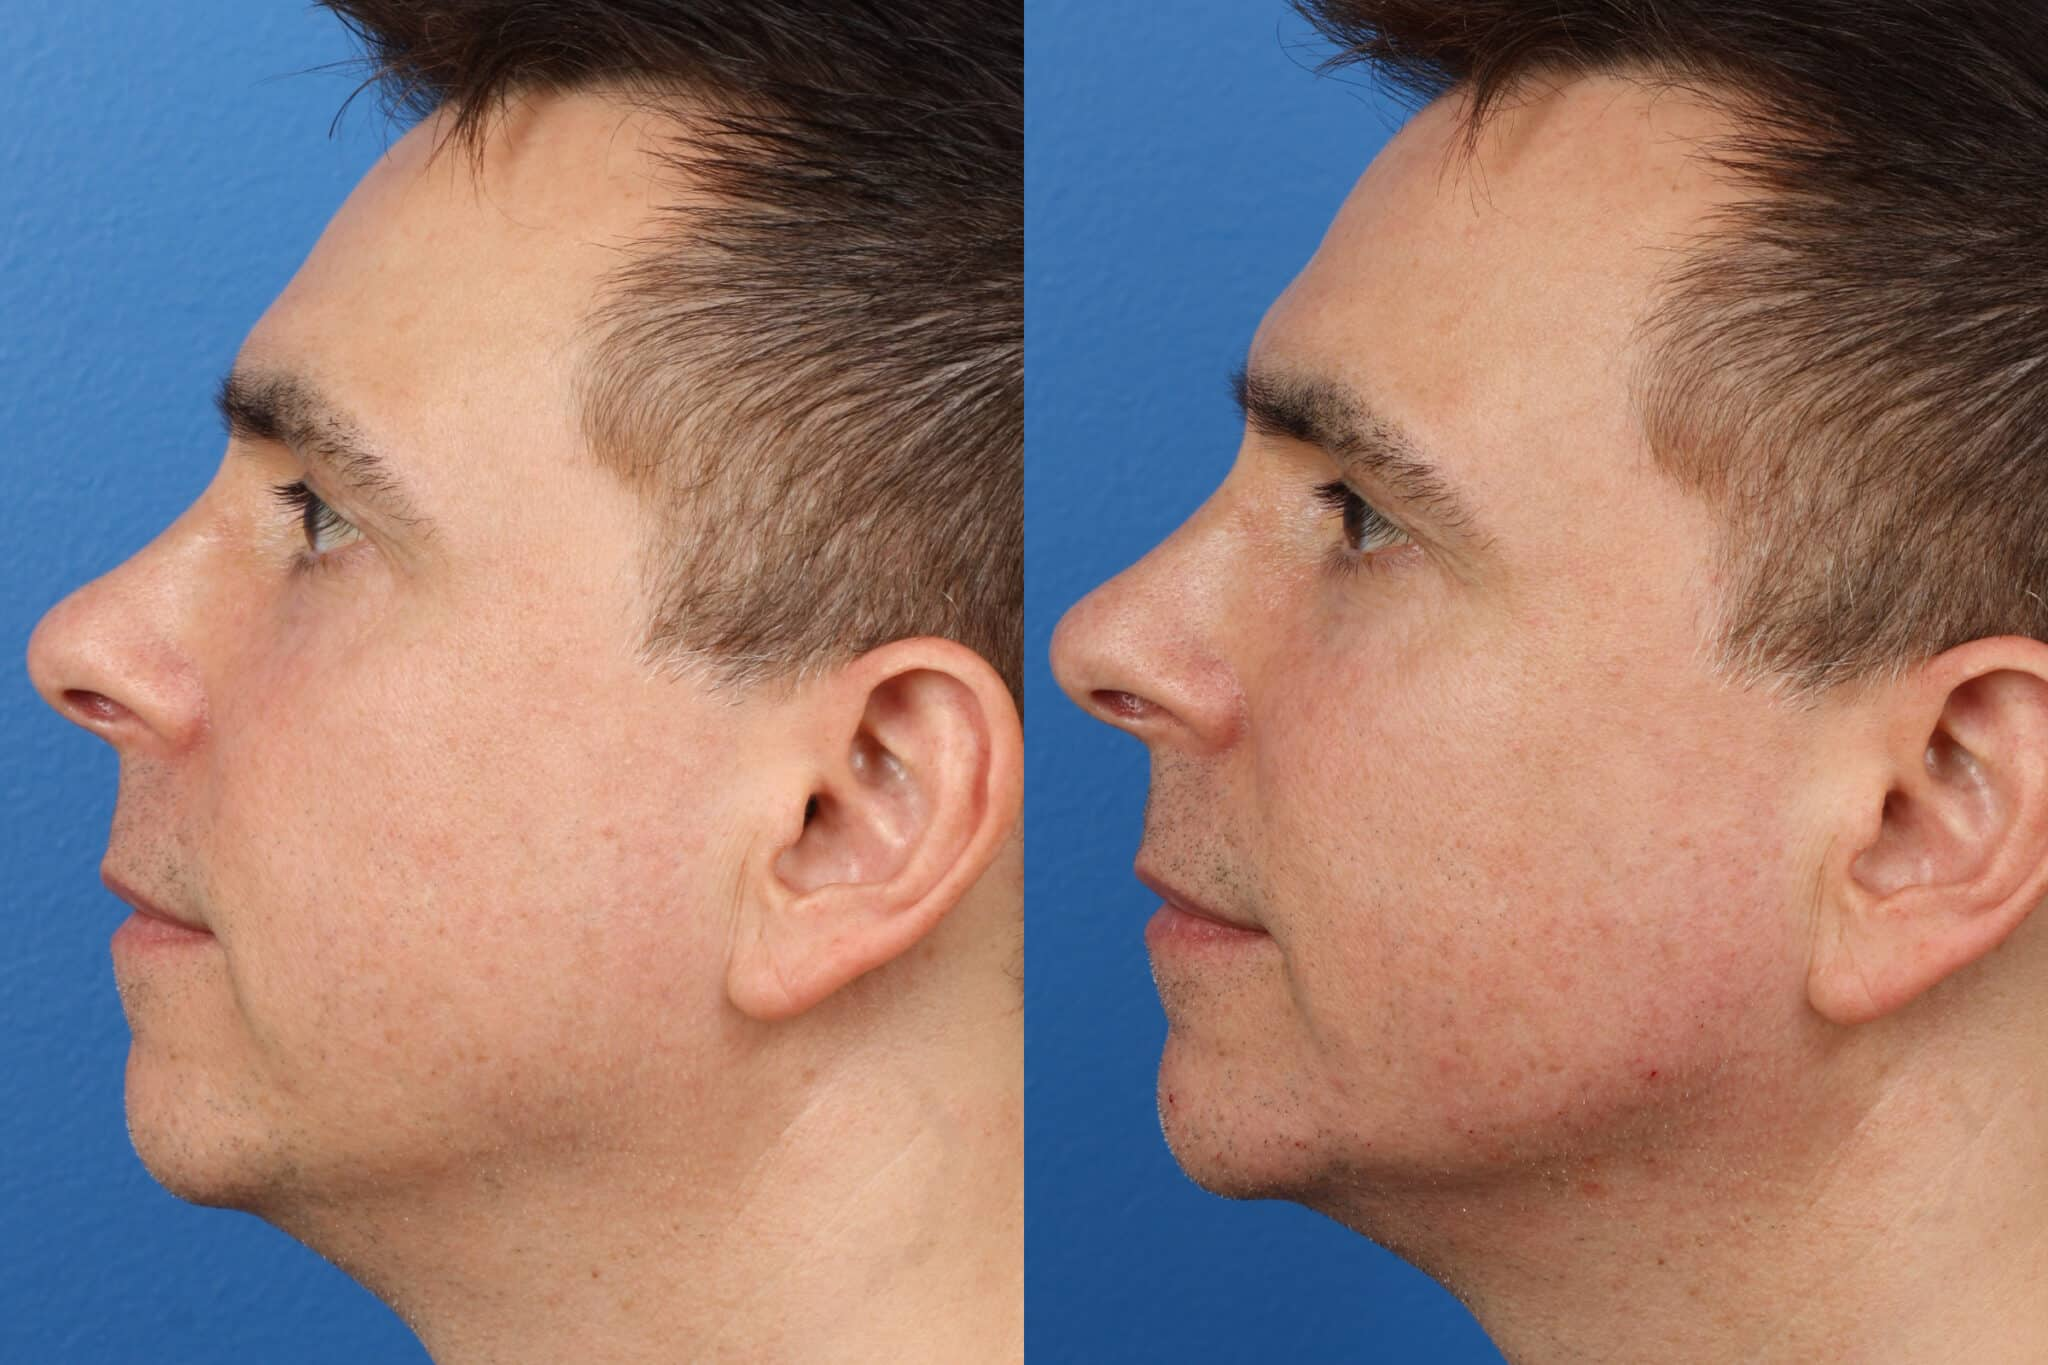 jaw contouring before and after in new york